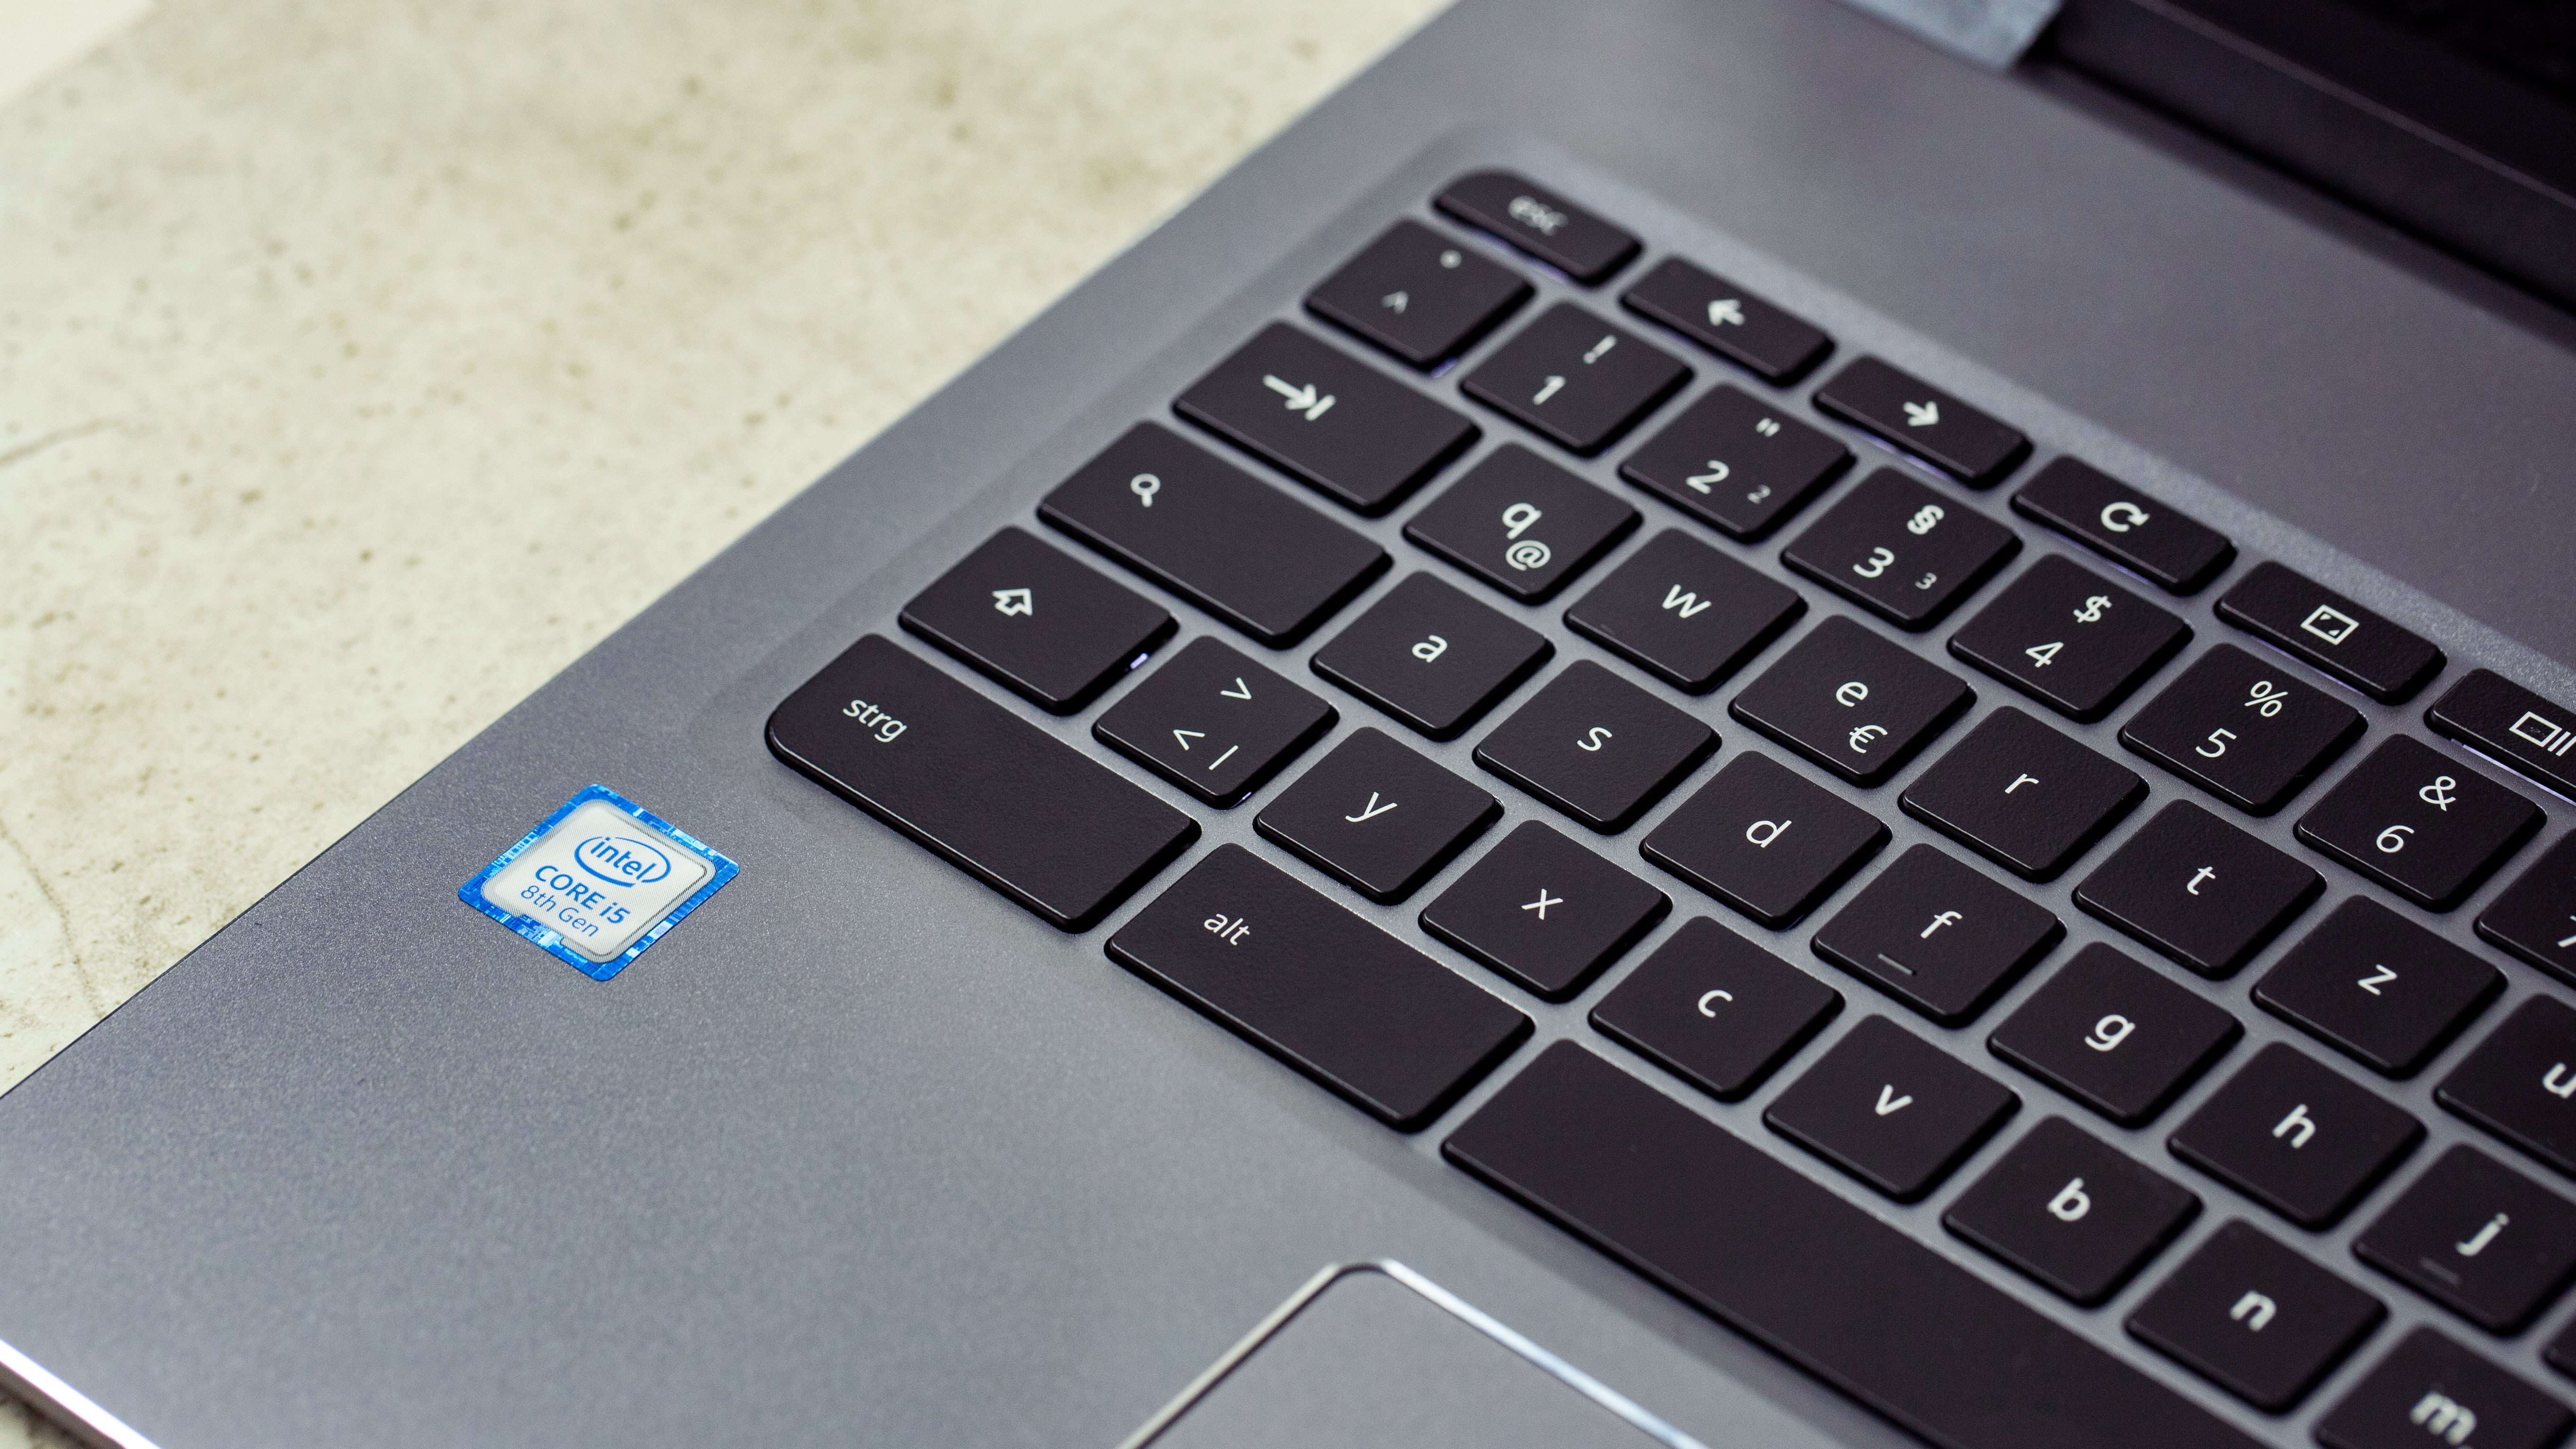 Acer Spin 13 review: the all-rounder Chromebook | AndroidPIT